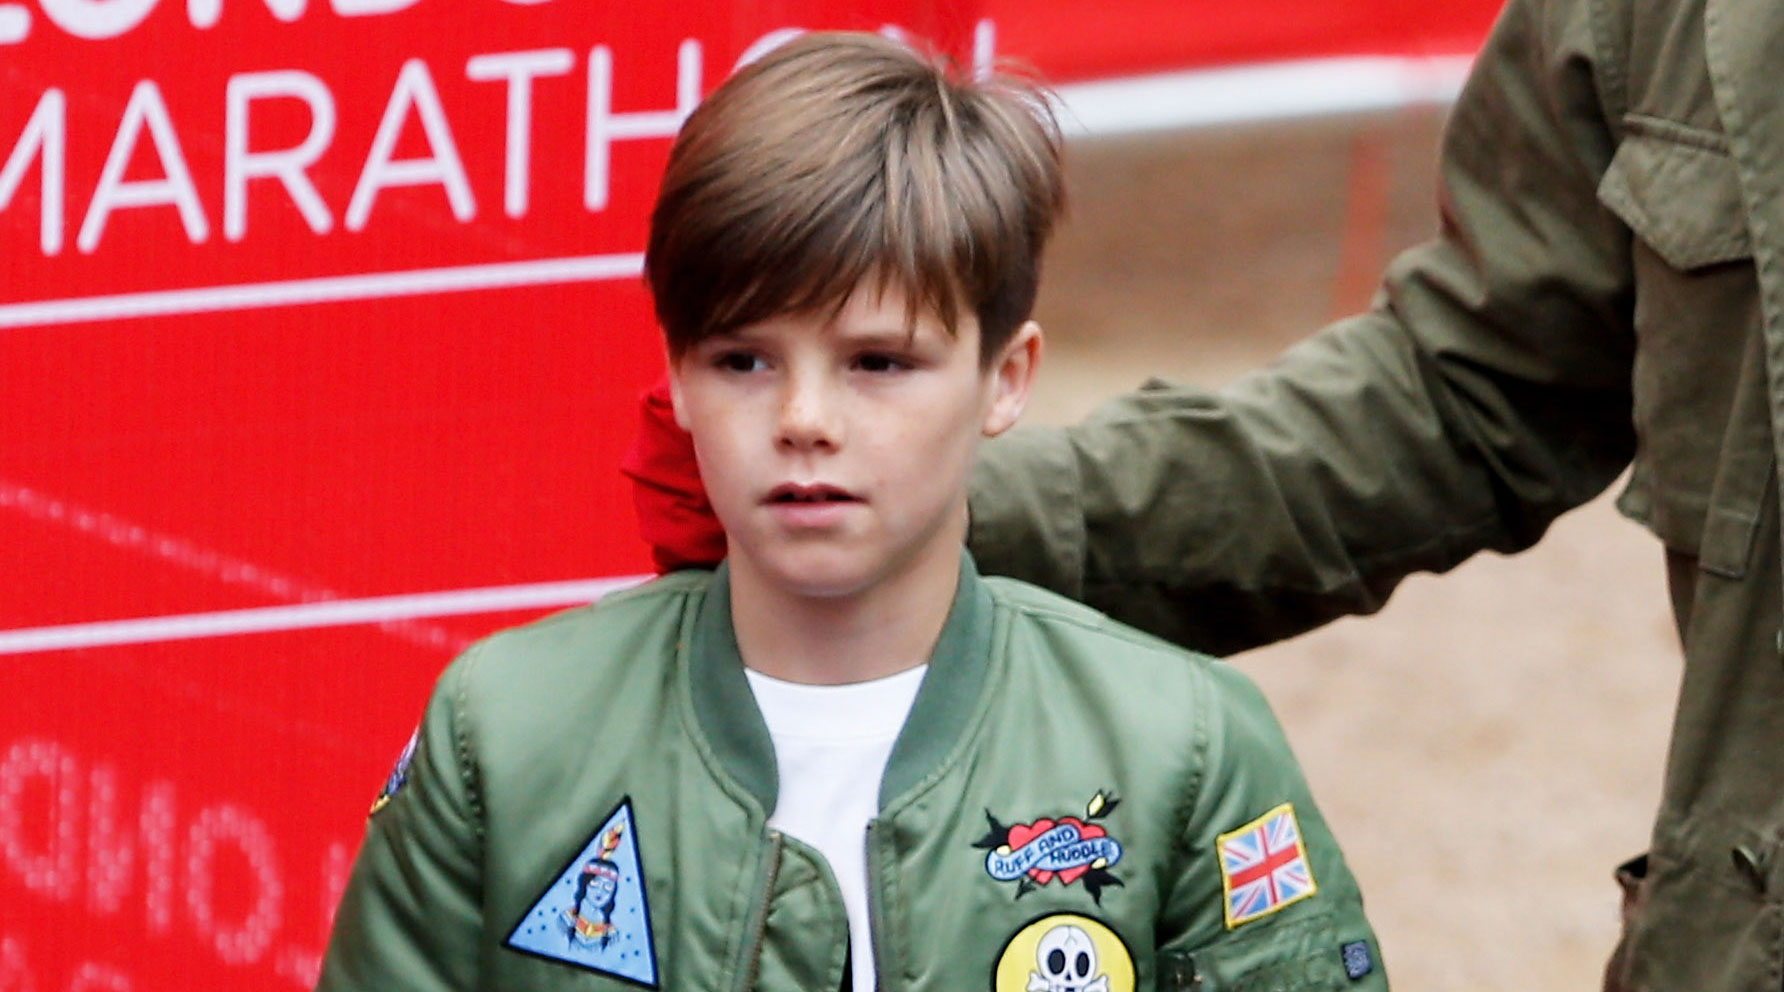 Watch Cruz Beckham Show Off His Adorable Singing Voice